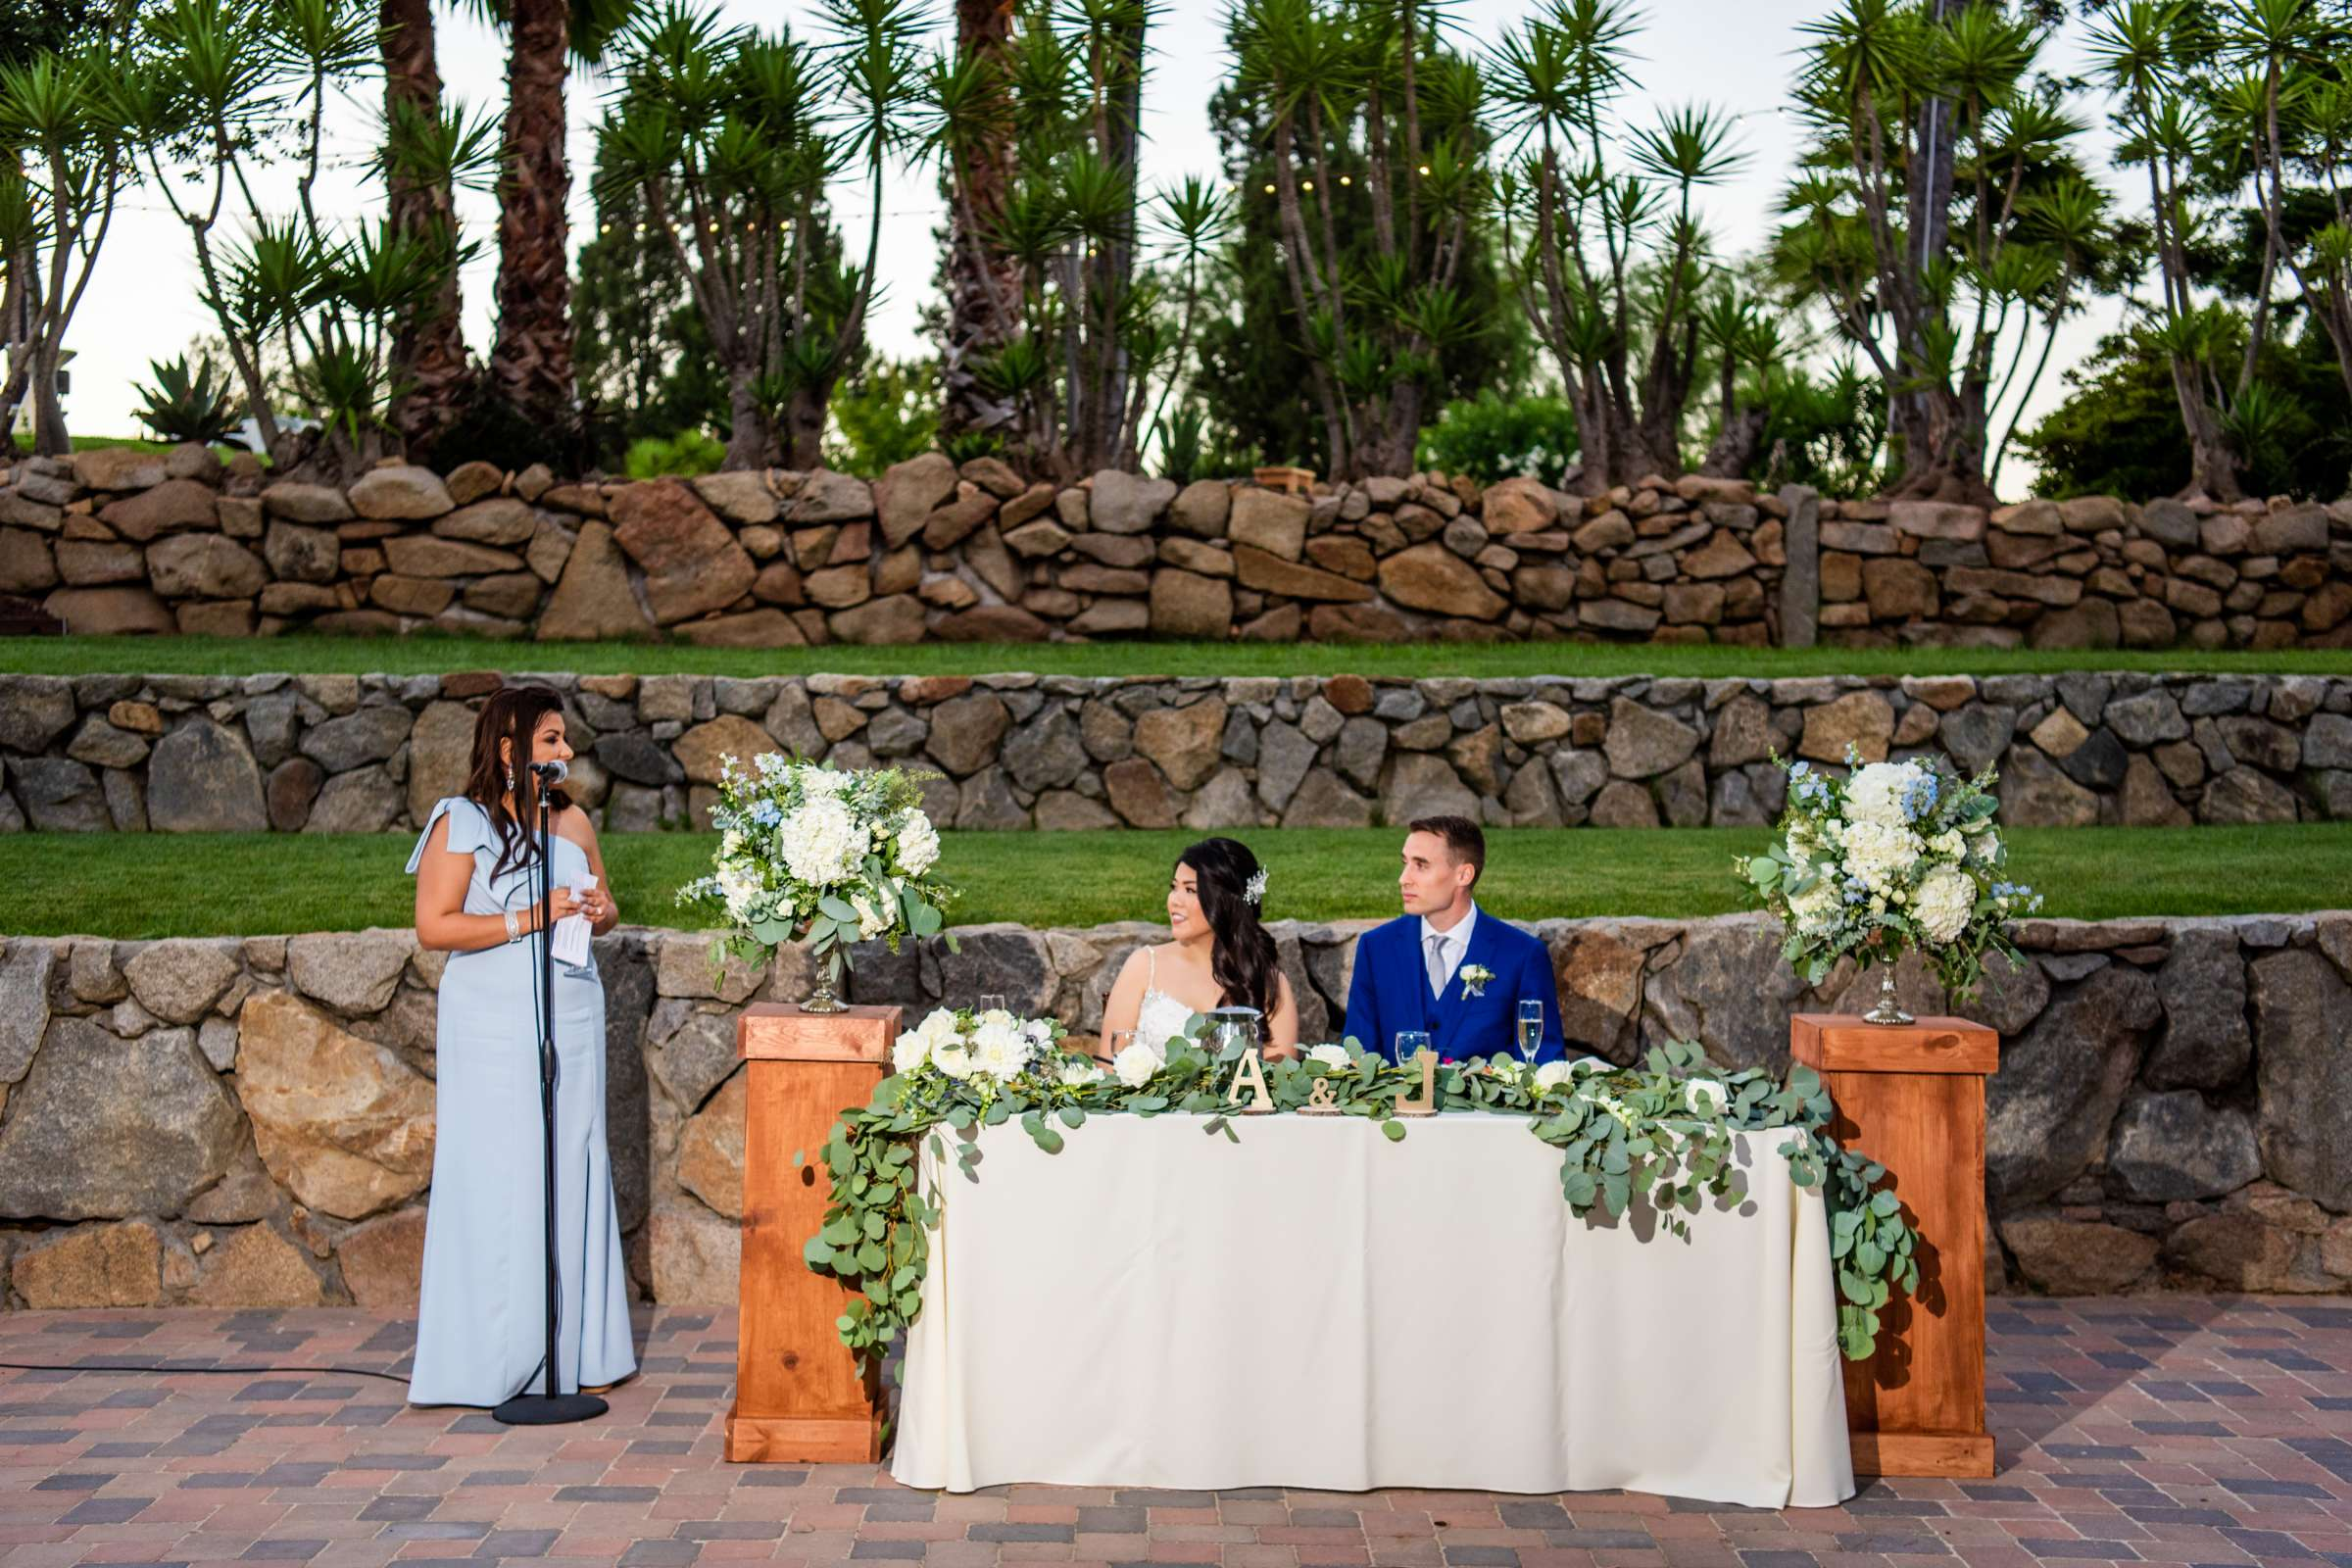 Mt Woodson Castle Wedding coordinated by I Do Weddings, Aya and Jared Wedding Photo #487000 by True Photography